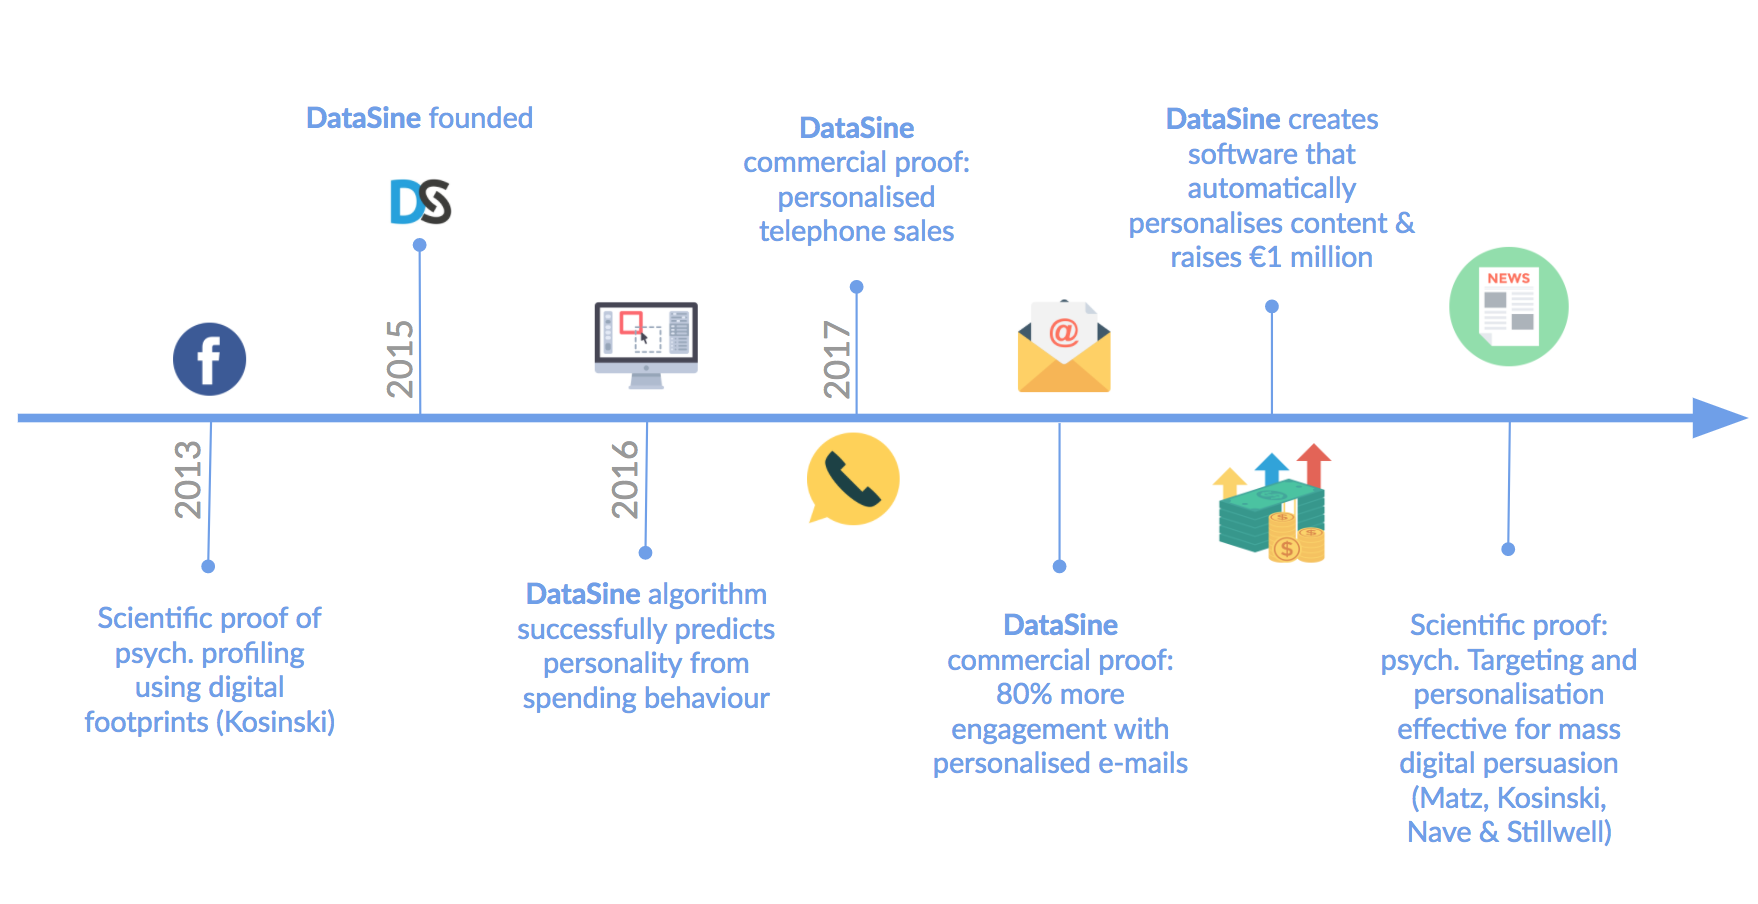 Timeline of DataSine and psychographics